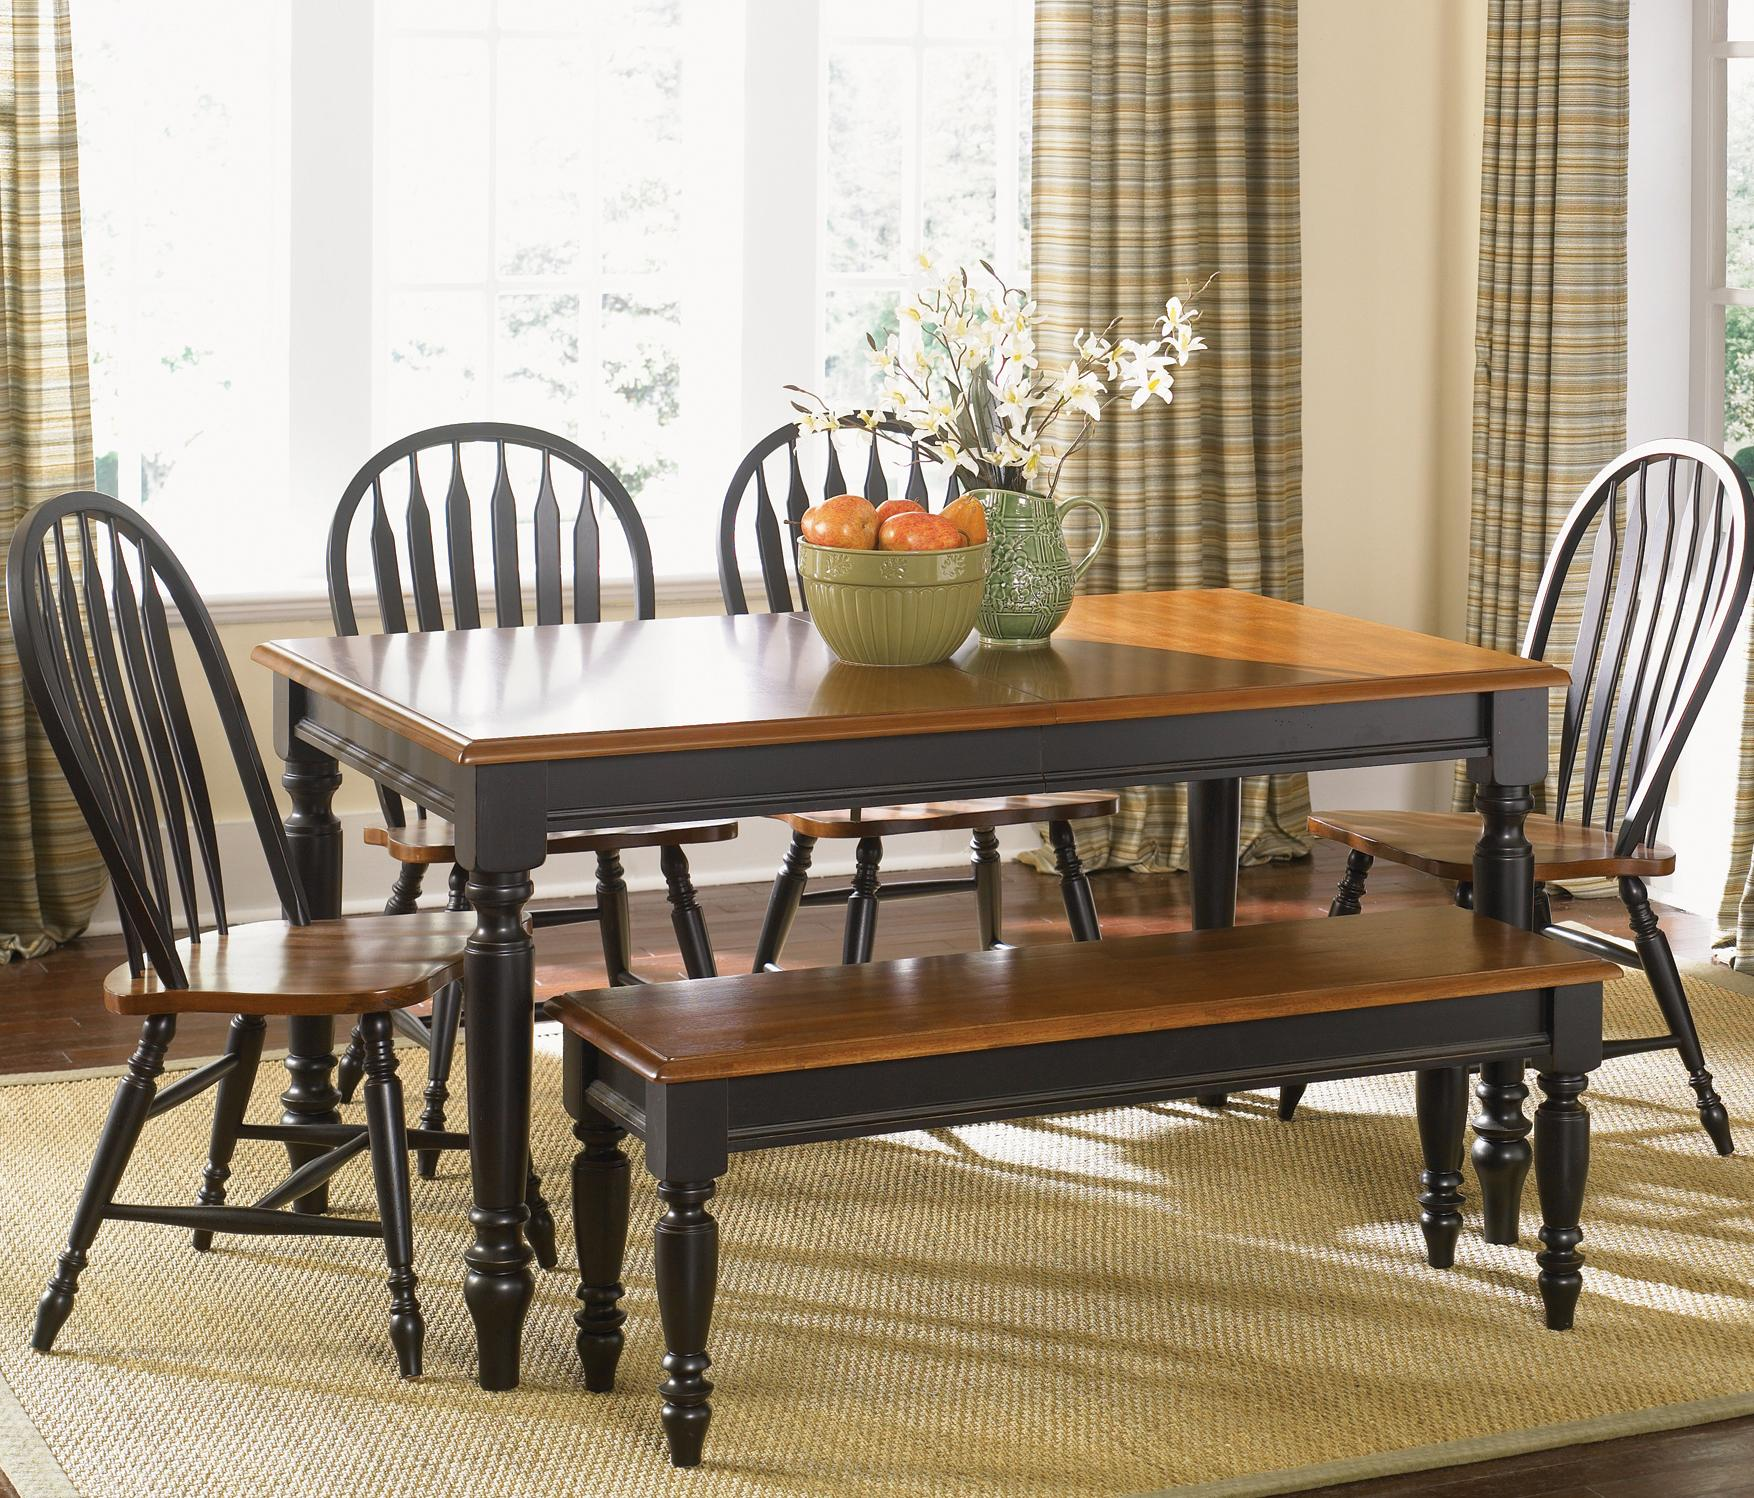 Liberty Furniture Low Country Six Piece Dining Set - Item Number 80-T3876+ & Liberty Furniture Low Country Six Piece Dining Set with Turned ...